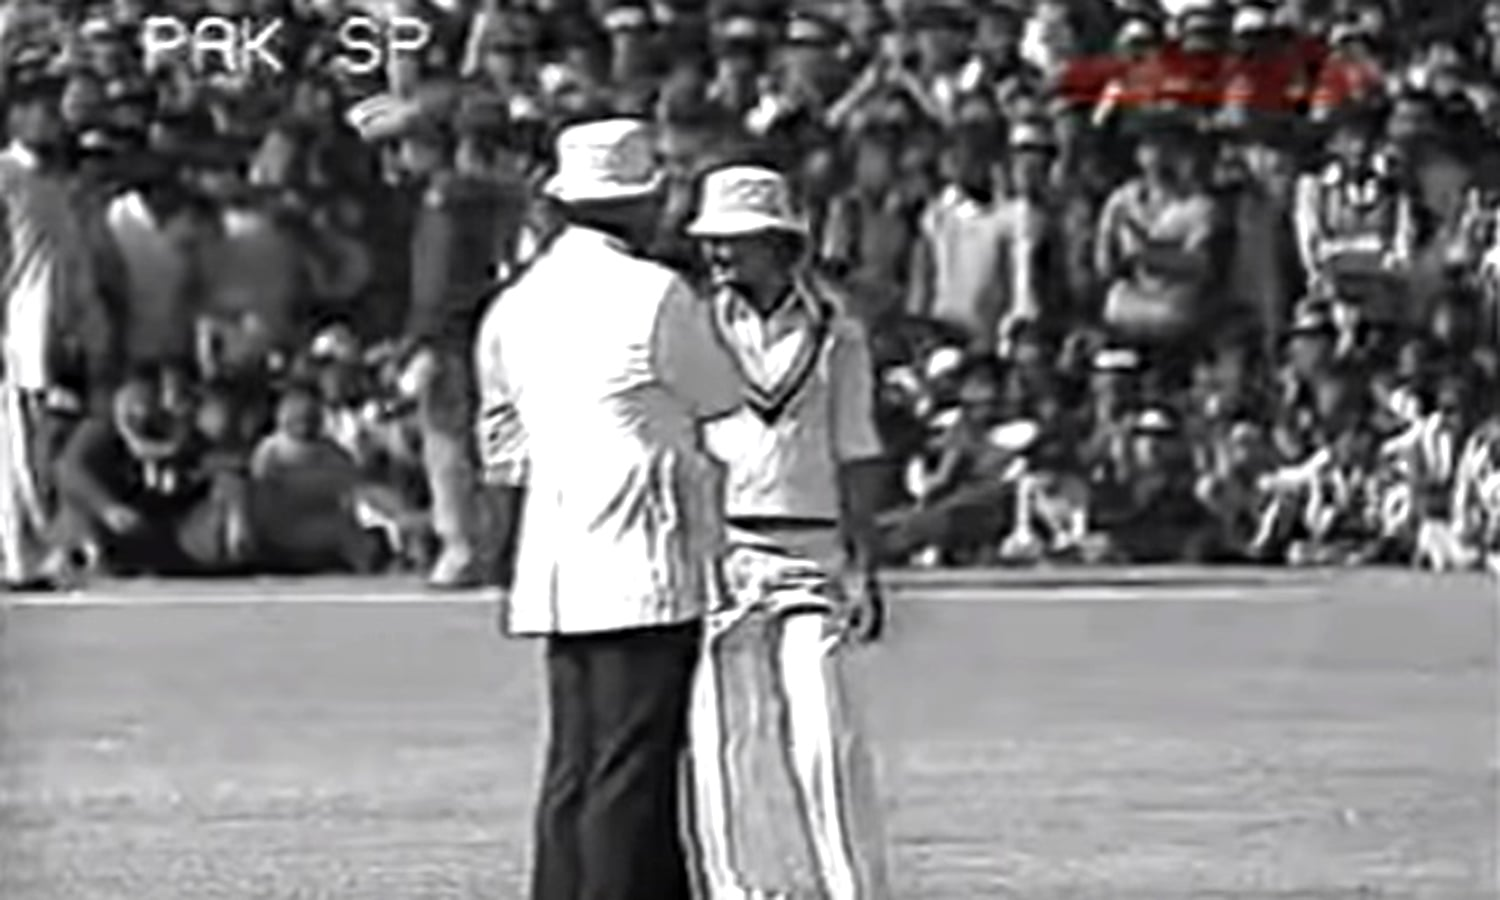 1976: Screen-grab of a New Zealand fielder talking to the leg umpire during the 1976 Pakistan-New Zealand ODI at Jinnah Stadium, Sialkot. The ground at the time had no fencing.